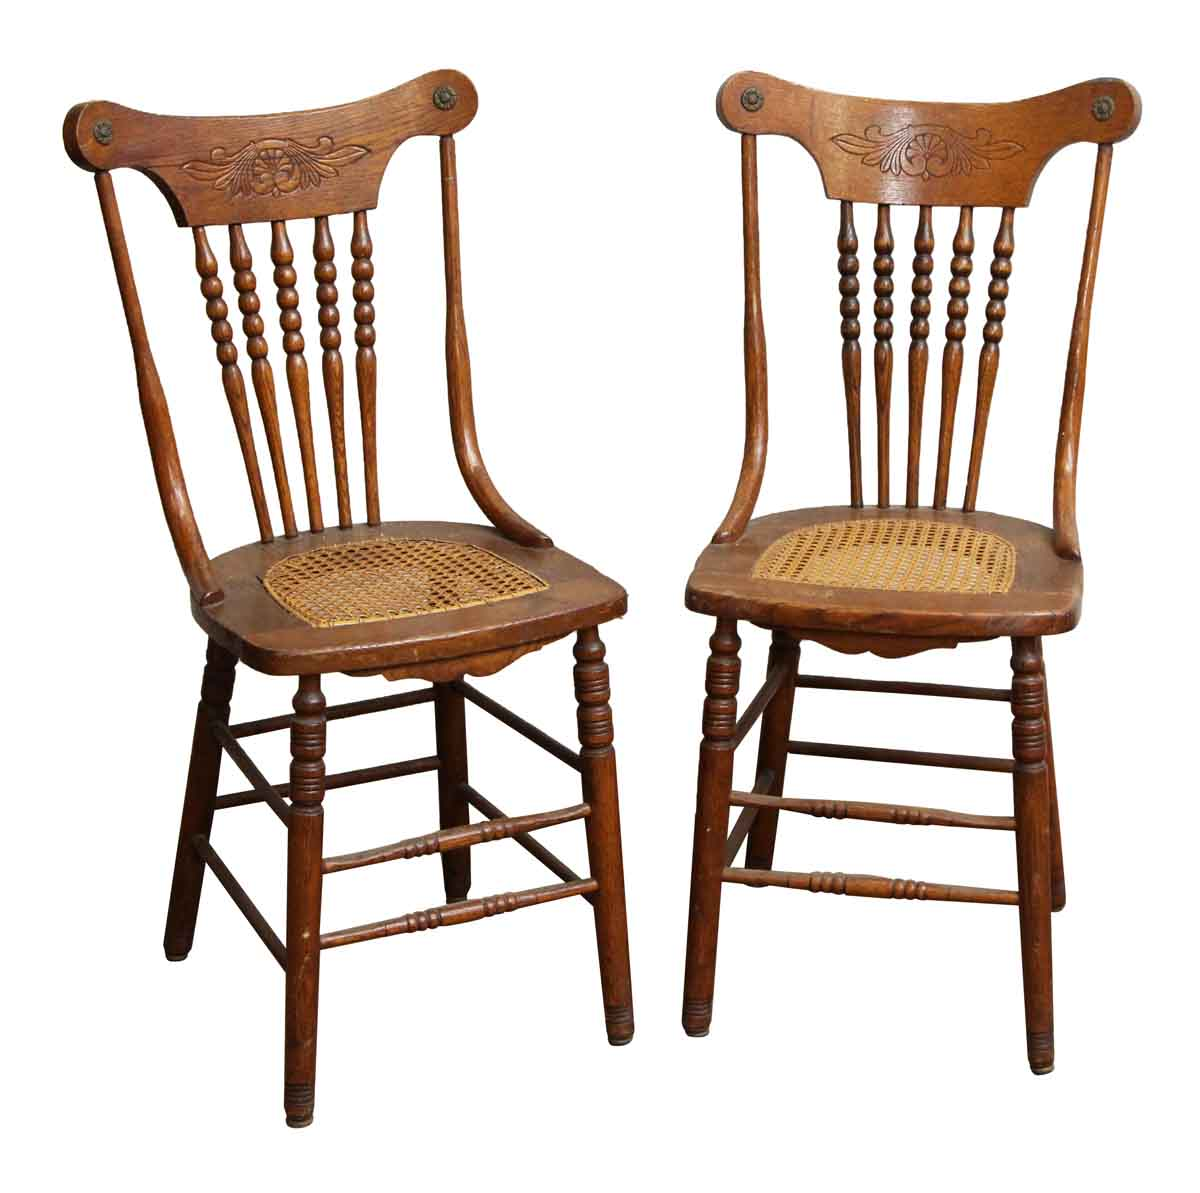 Vintage Wooden Kitchen Chairs: Pair Of Carved Wood Chairs With Wicker Seat